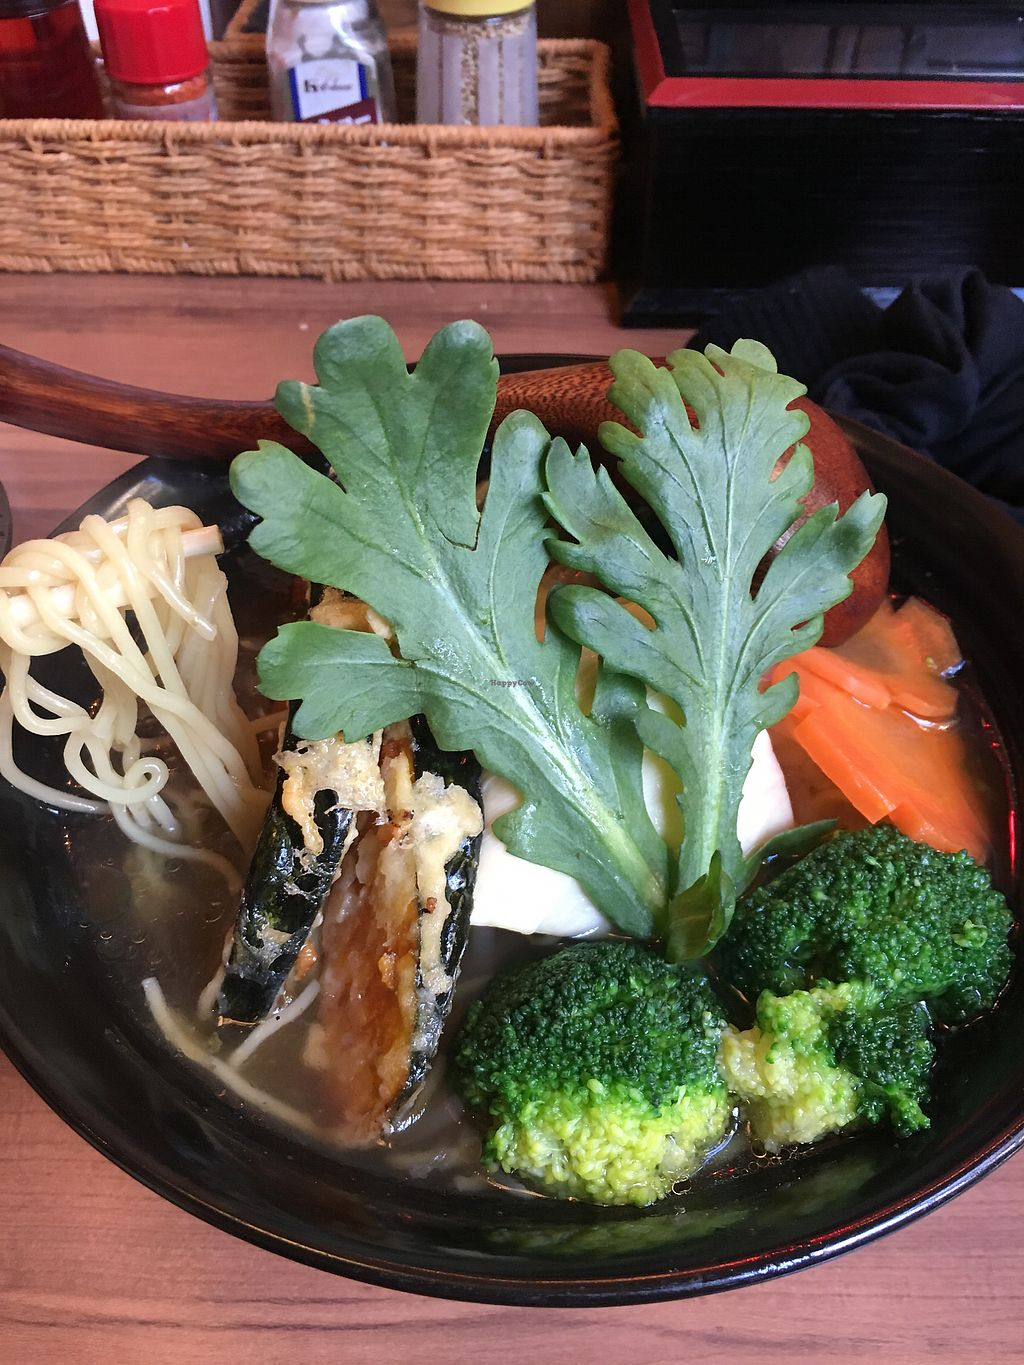 """Photo of Ramen Sen No Kaze  by <a href=""""/members/profile/LaurenJumikis"""">LaurenJumikis</a> <br/>Veggie ramen with kelp broth  <br/> February 14, 2018  - <a href='/contact/abuse/image/111143/359119'>Report</a>"""